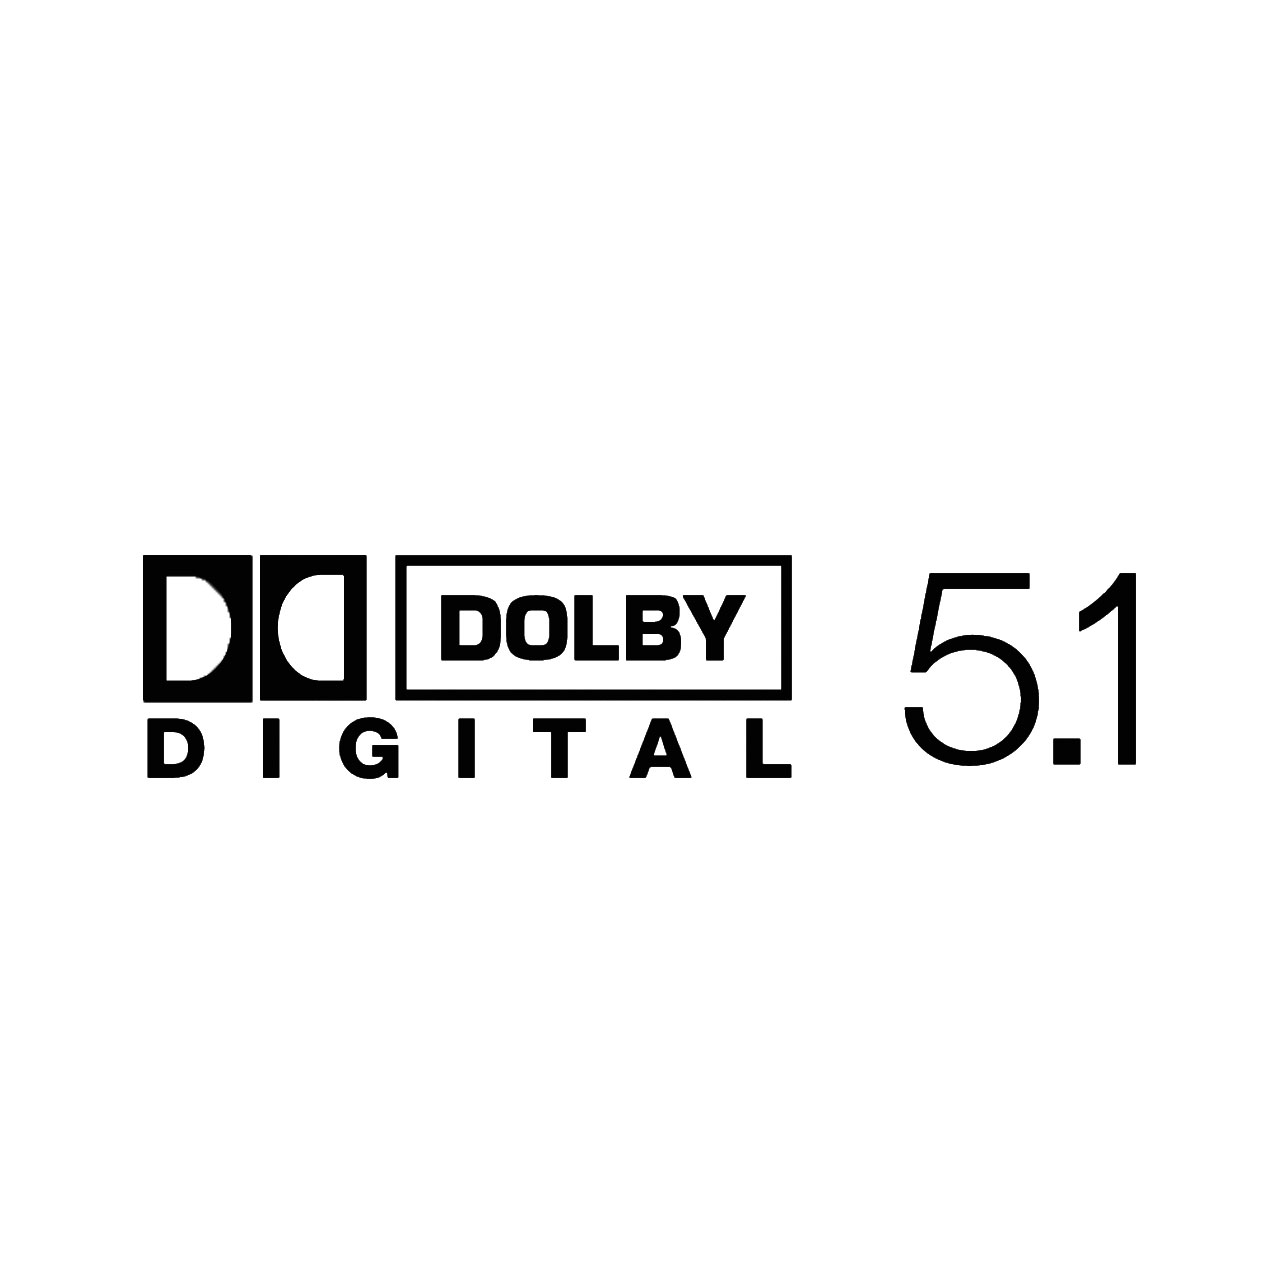 Dolby Atmos5